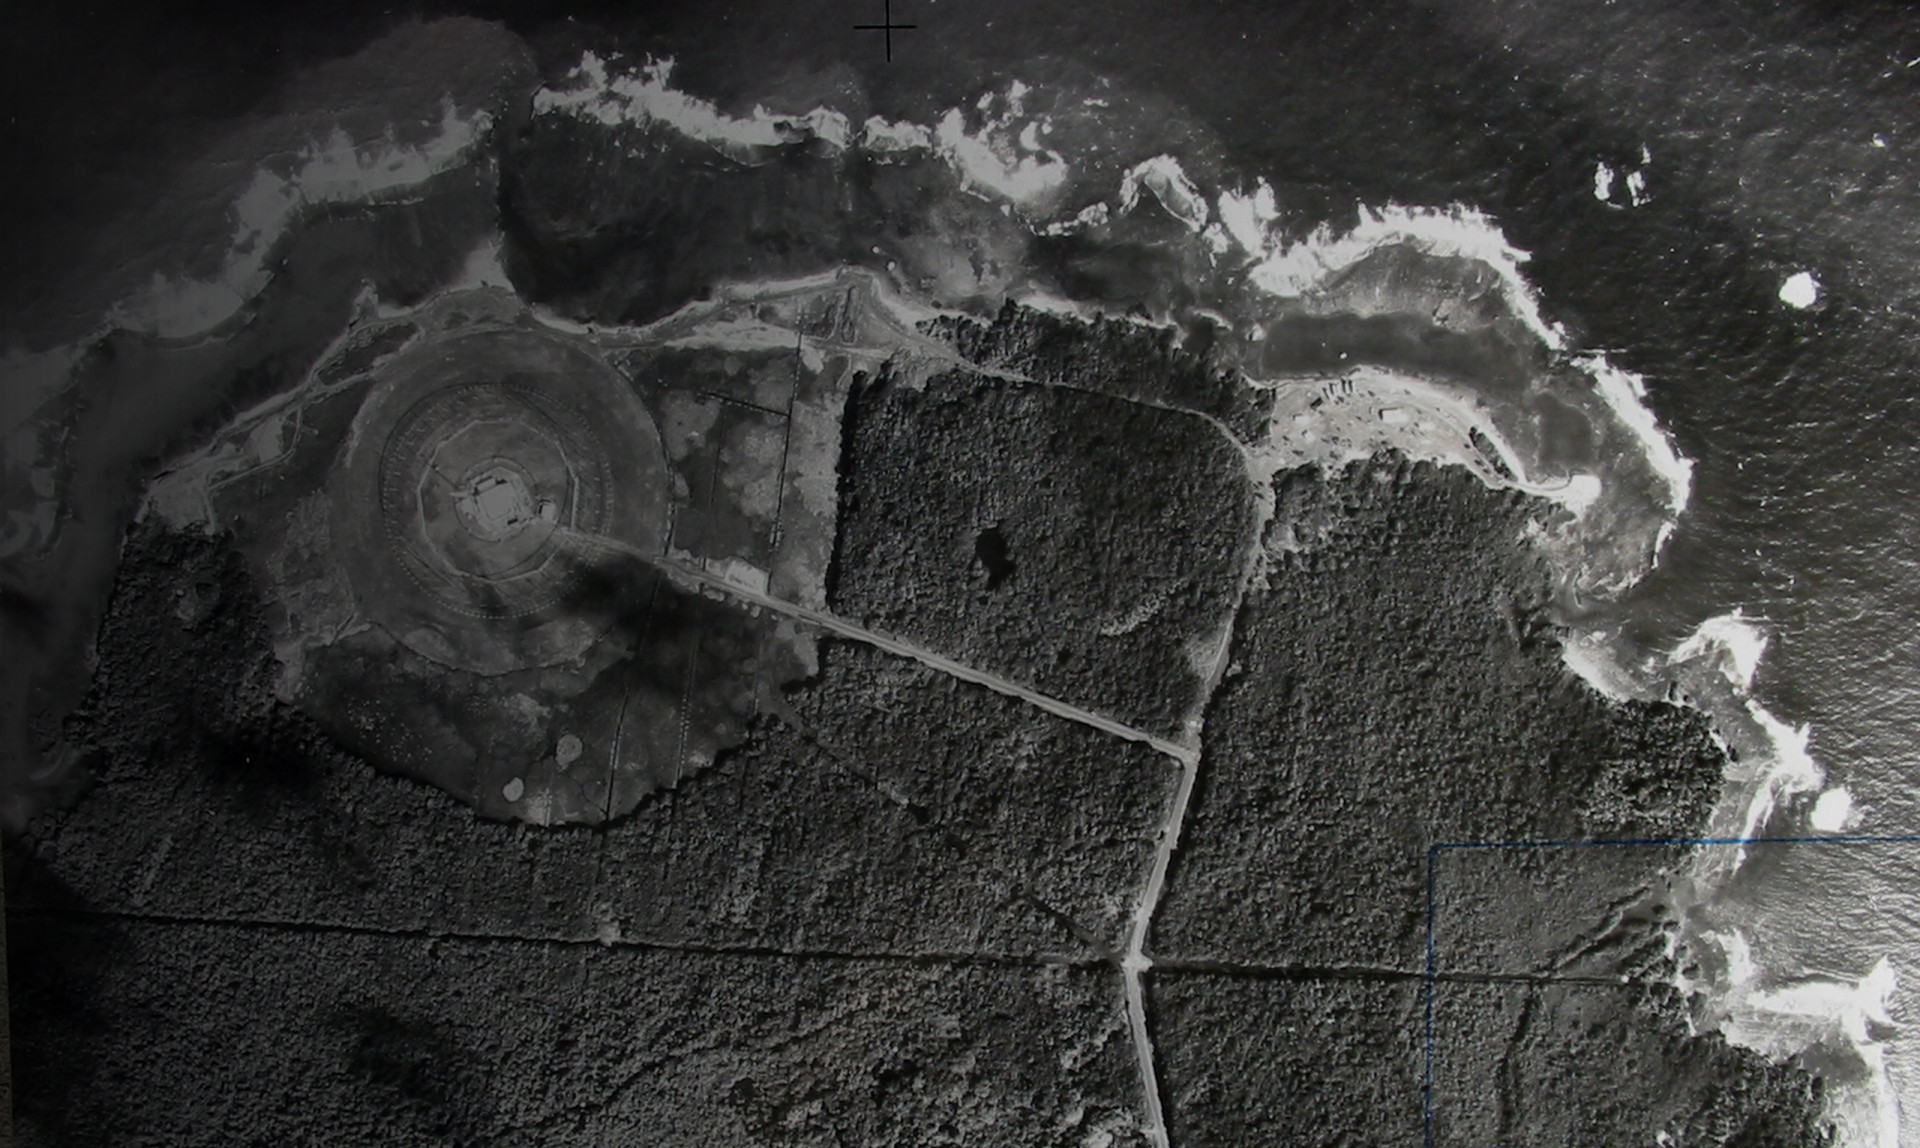 Punta Galeta was a U.S. military communications station during World War II and the Cold War